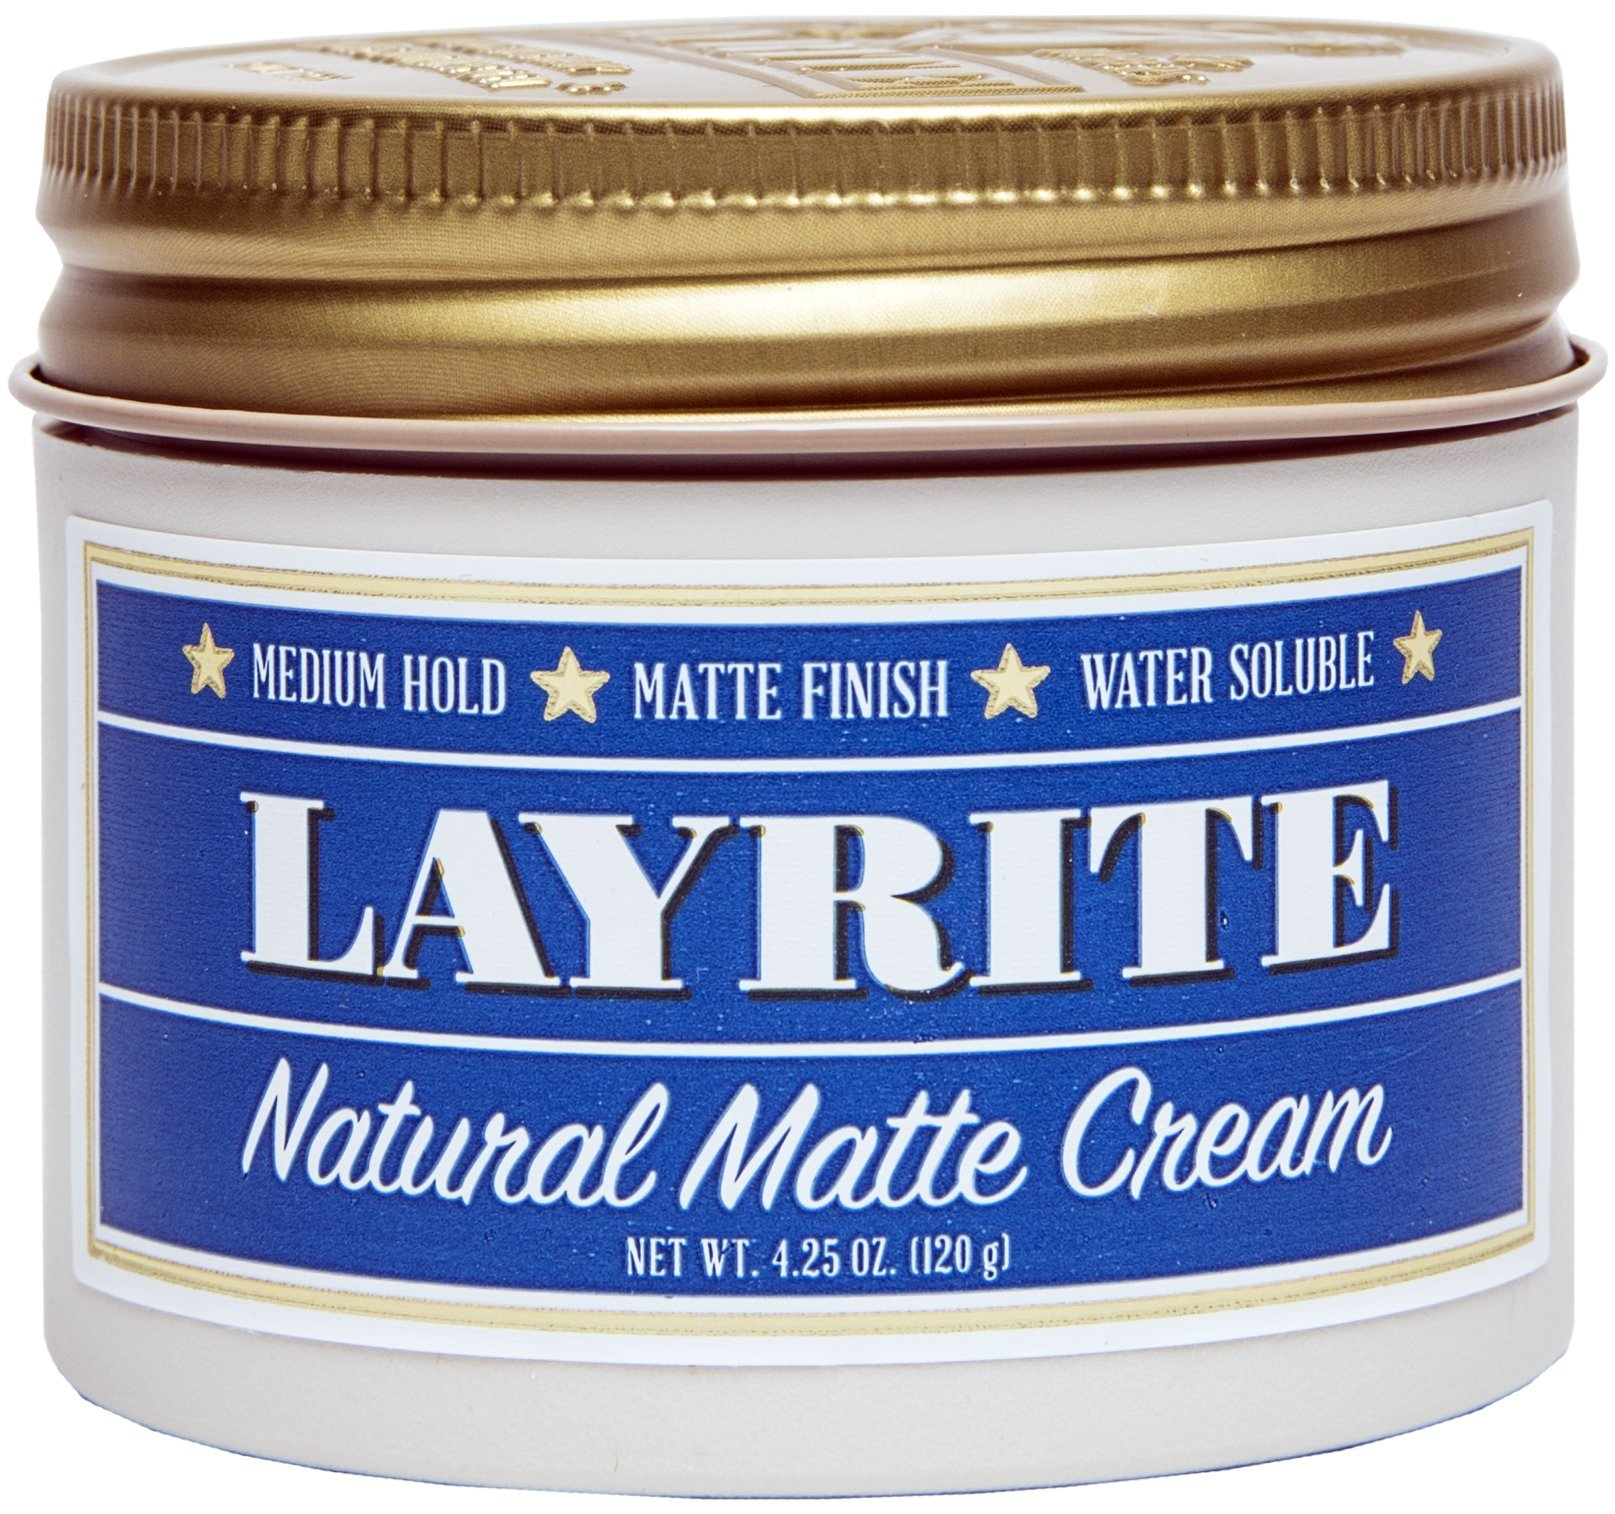 Layrite Natural Matte Cream Pomade, 4.25 oz. by Layrite